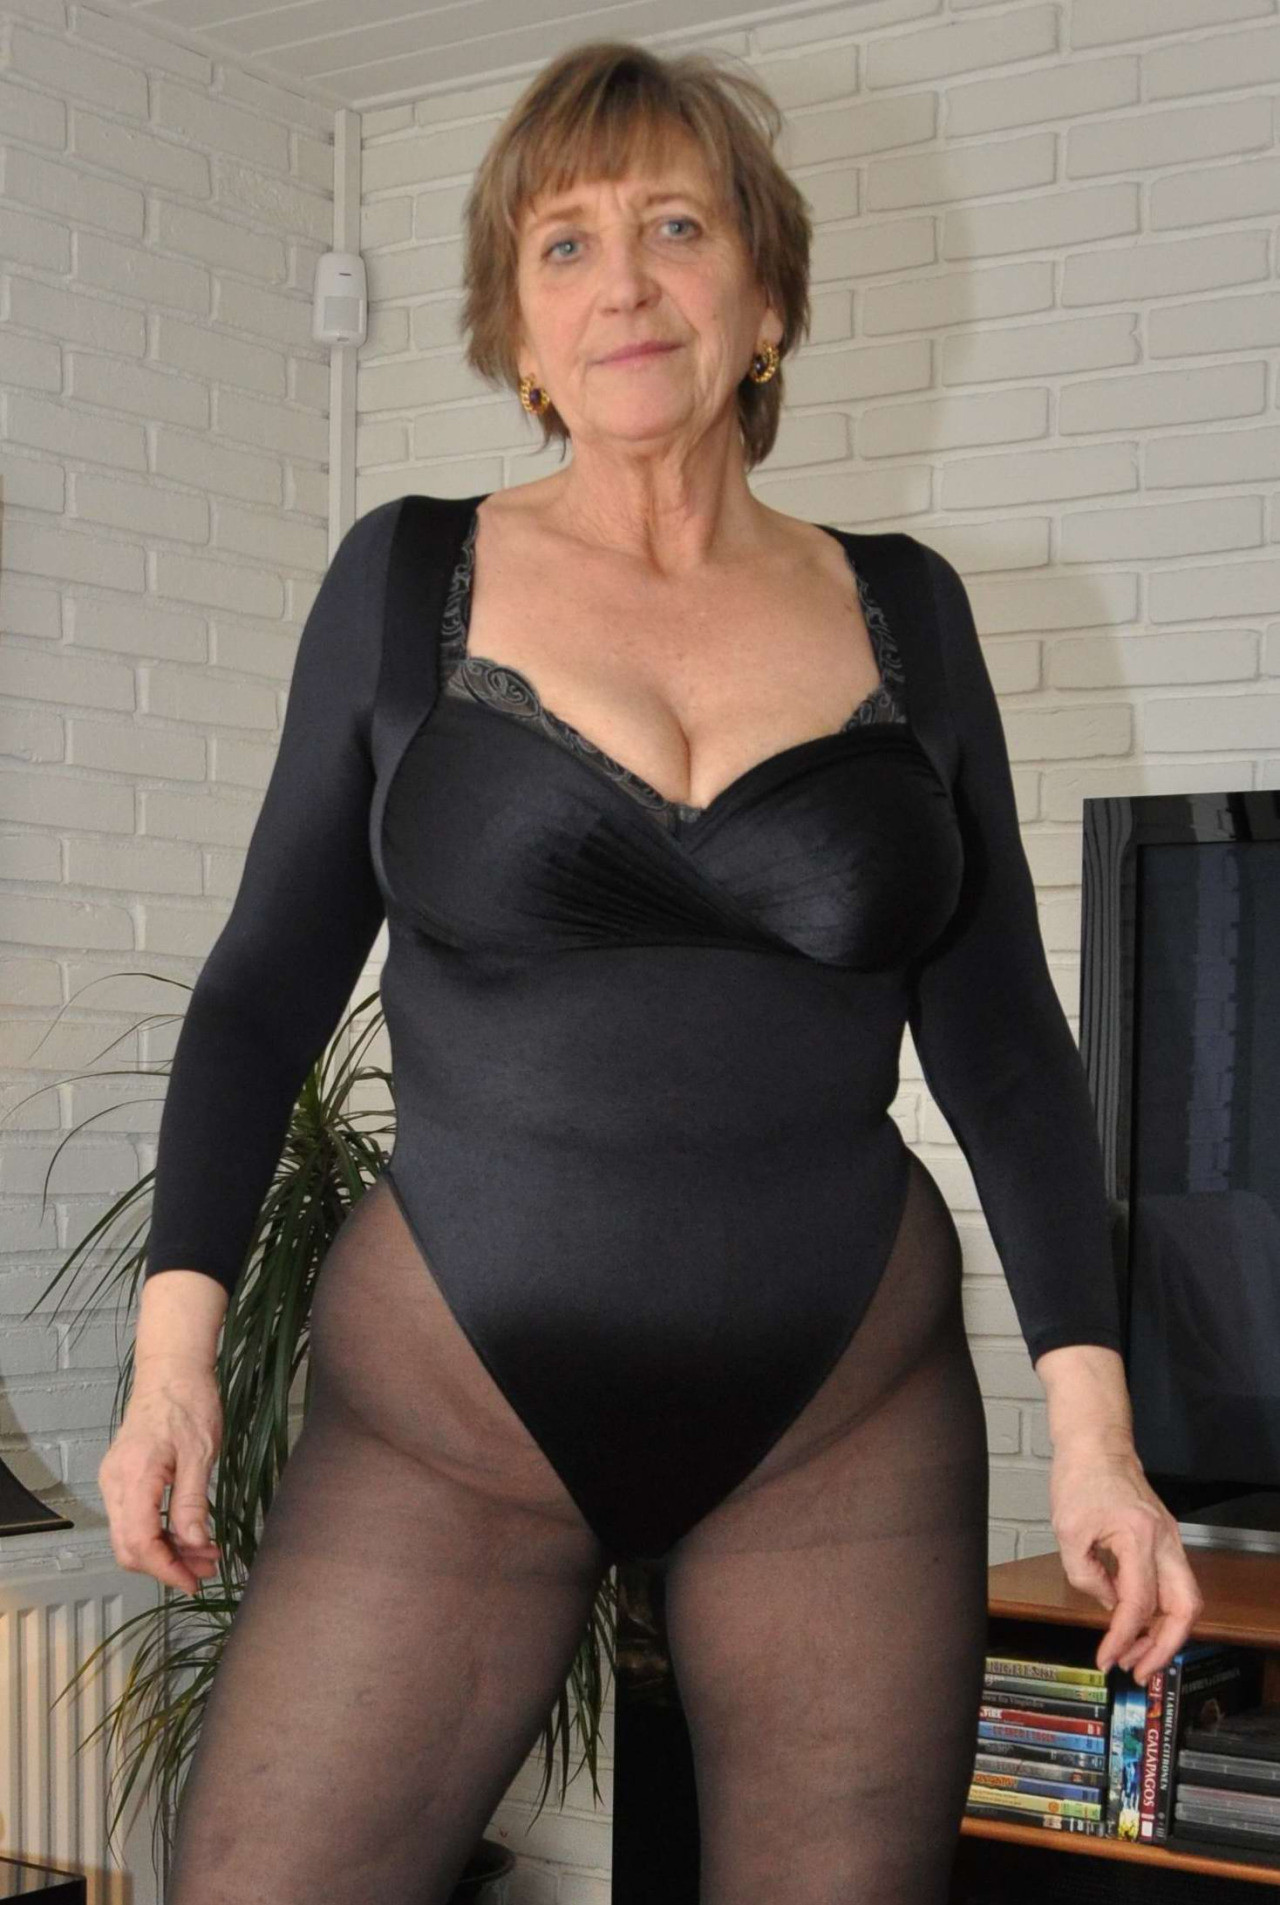 Mature Women Free Granny Sex 36